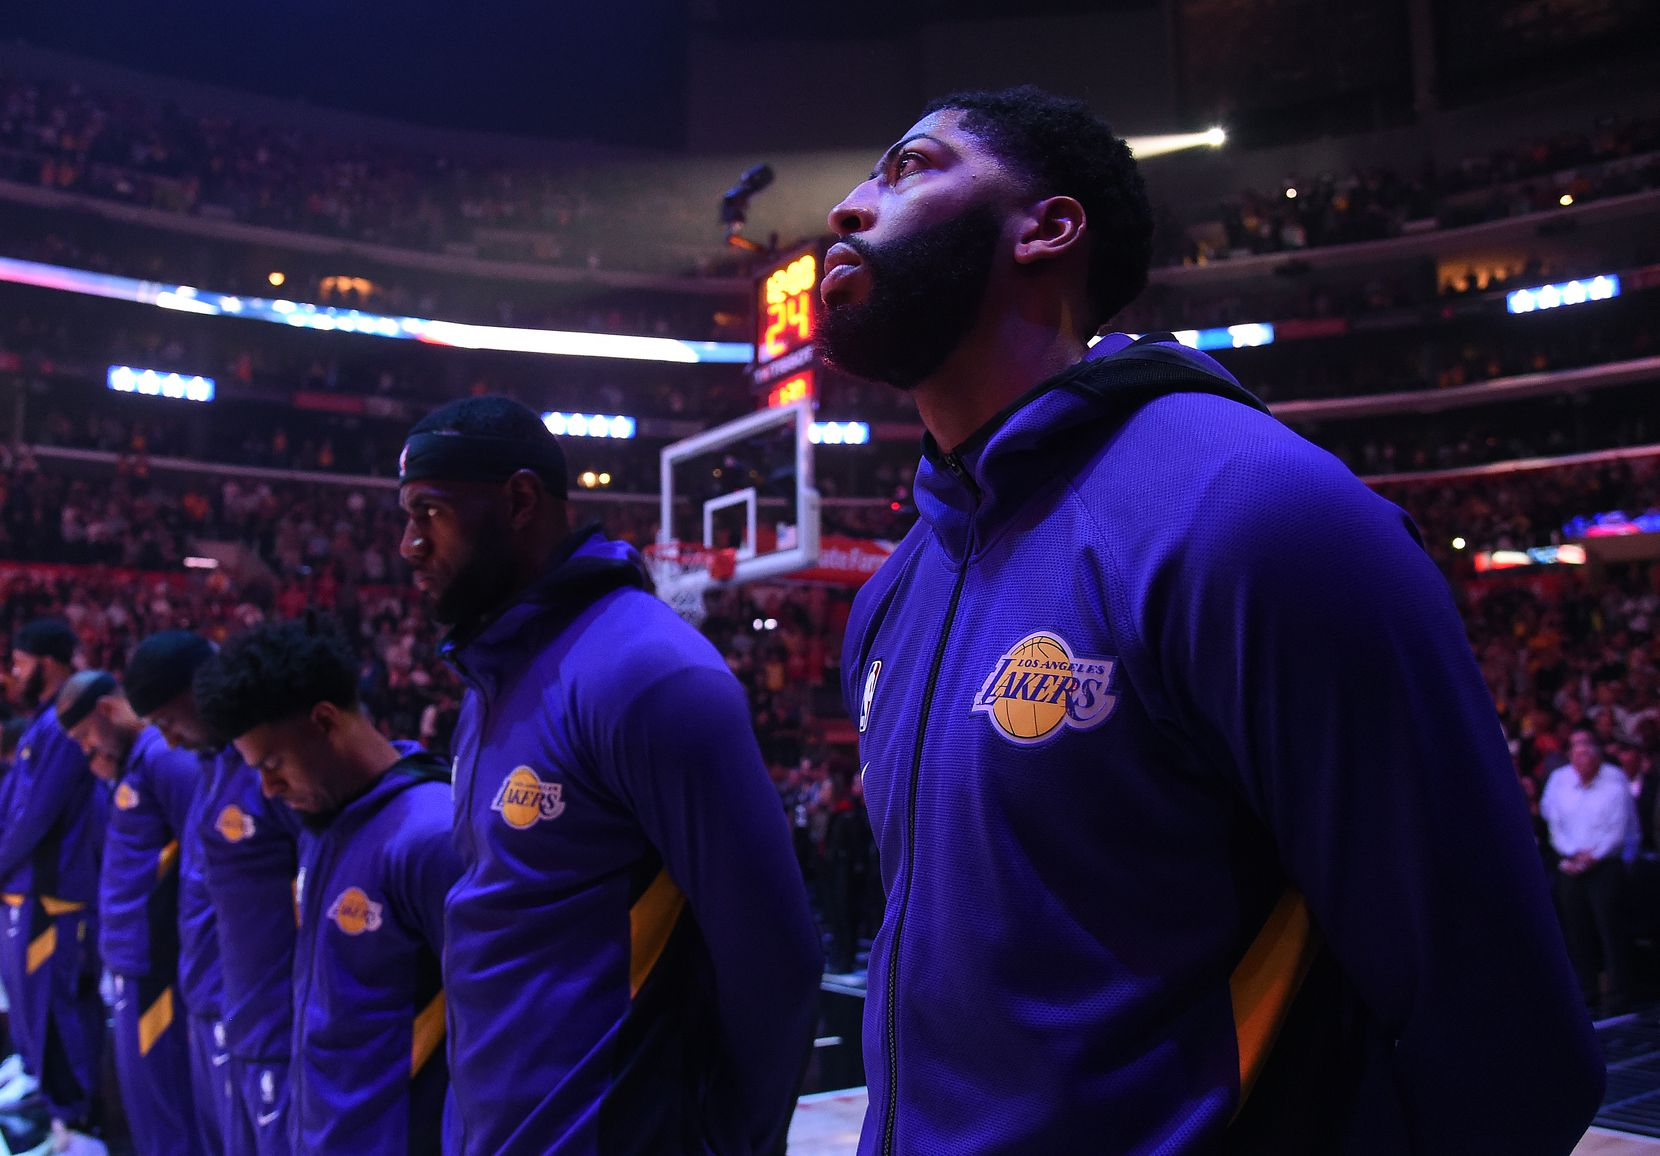 Los Angeles Lakers Anthony Davis (from right) and LeBron James provide plenty of star power at the Staples Center, which also is home to the NBA's Los Angeles Clippers.